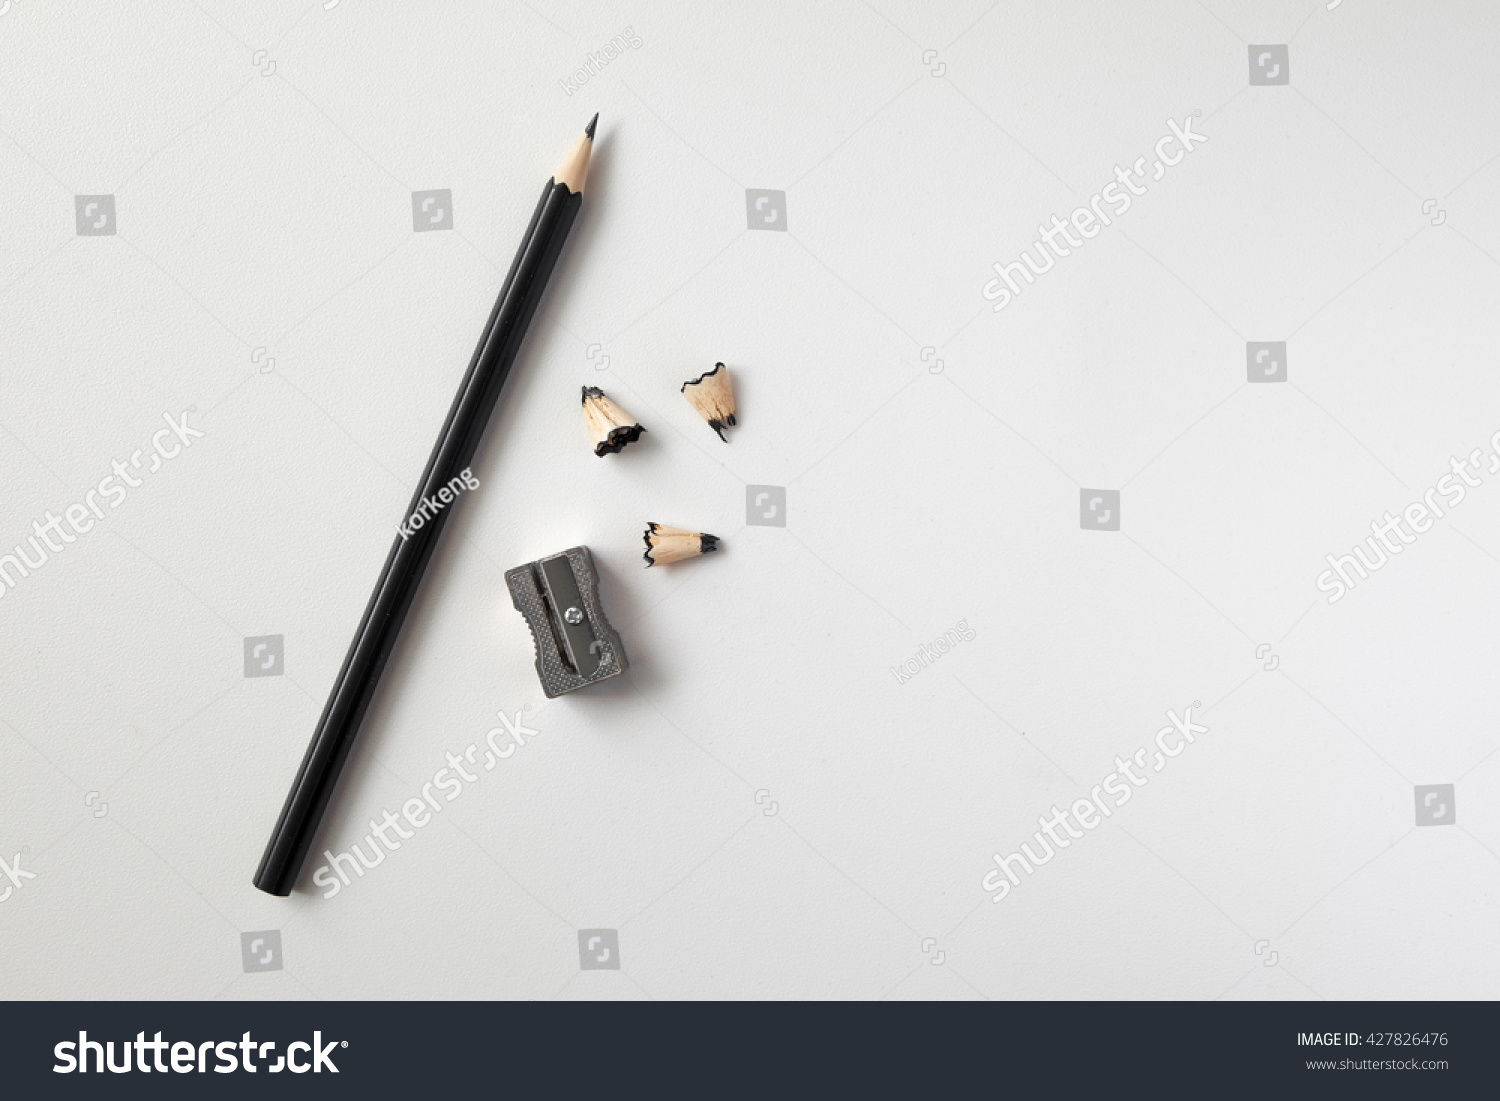 Pencil with sharpening shavings on white background #427826476